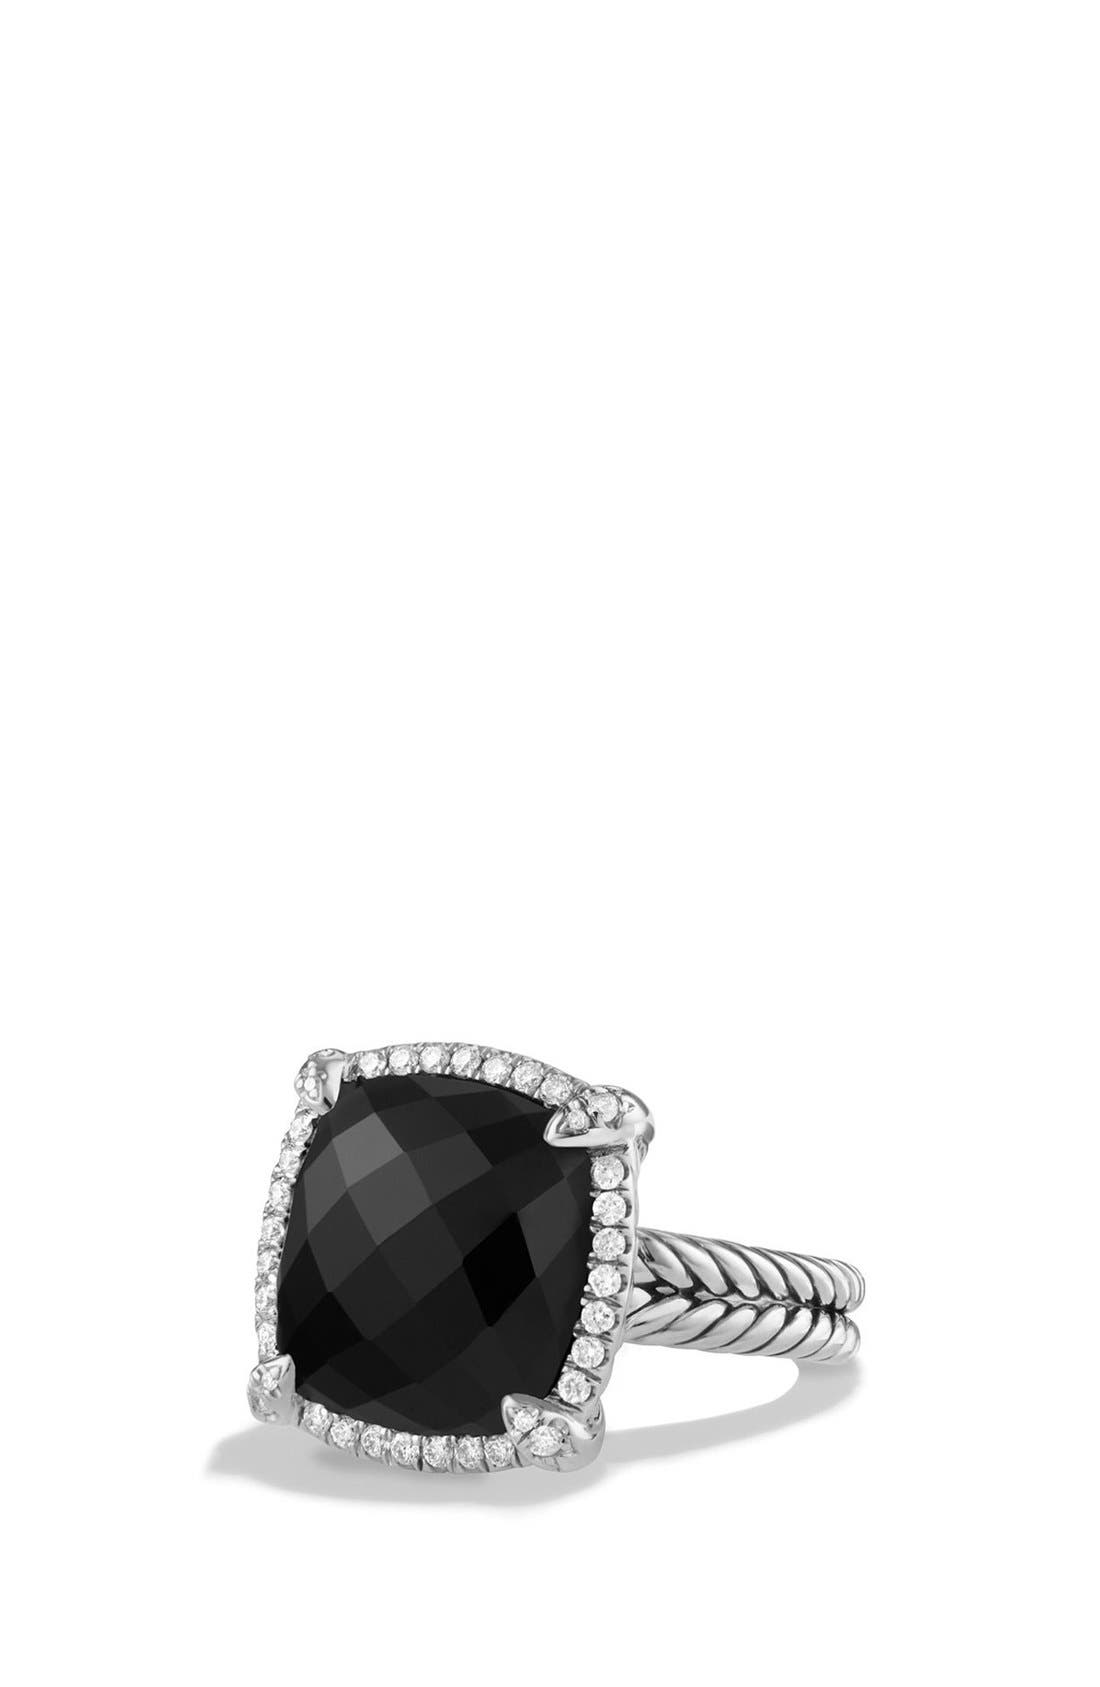 'Châtelaine' Large Pavé Bezel Ring with Diamonds,                             Main thumbnail 1, color,                             BLACK ONYX